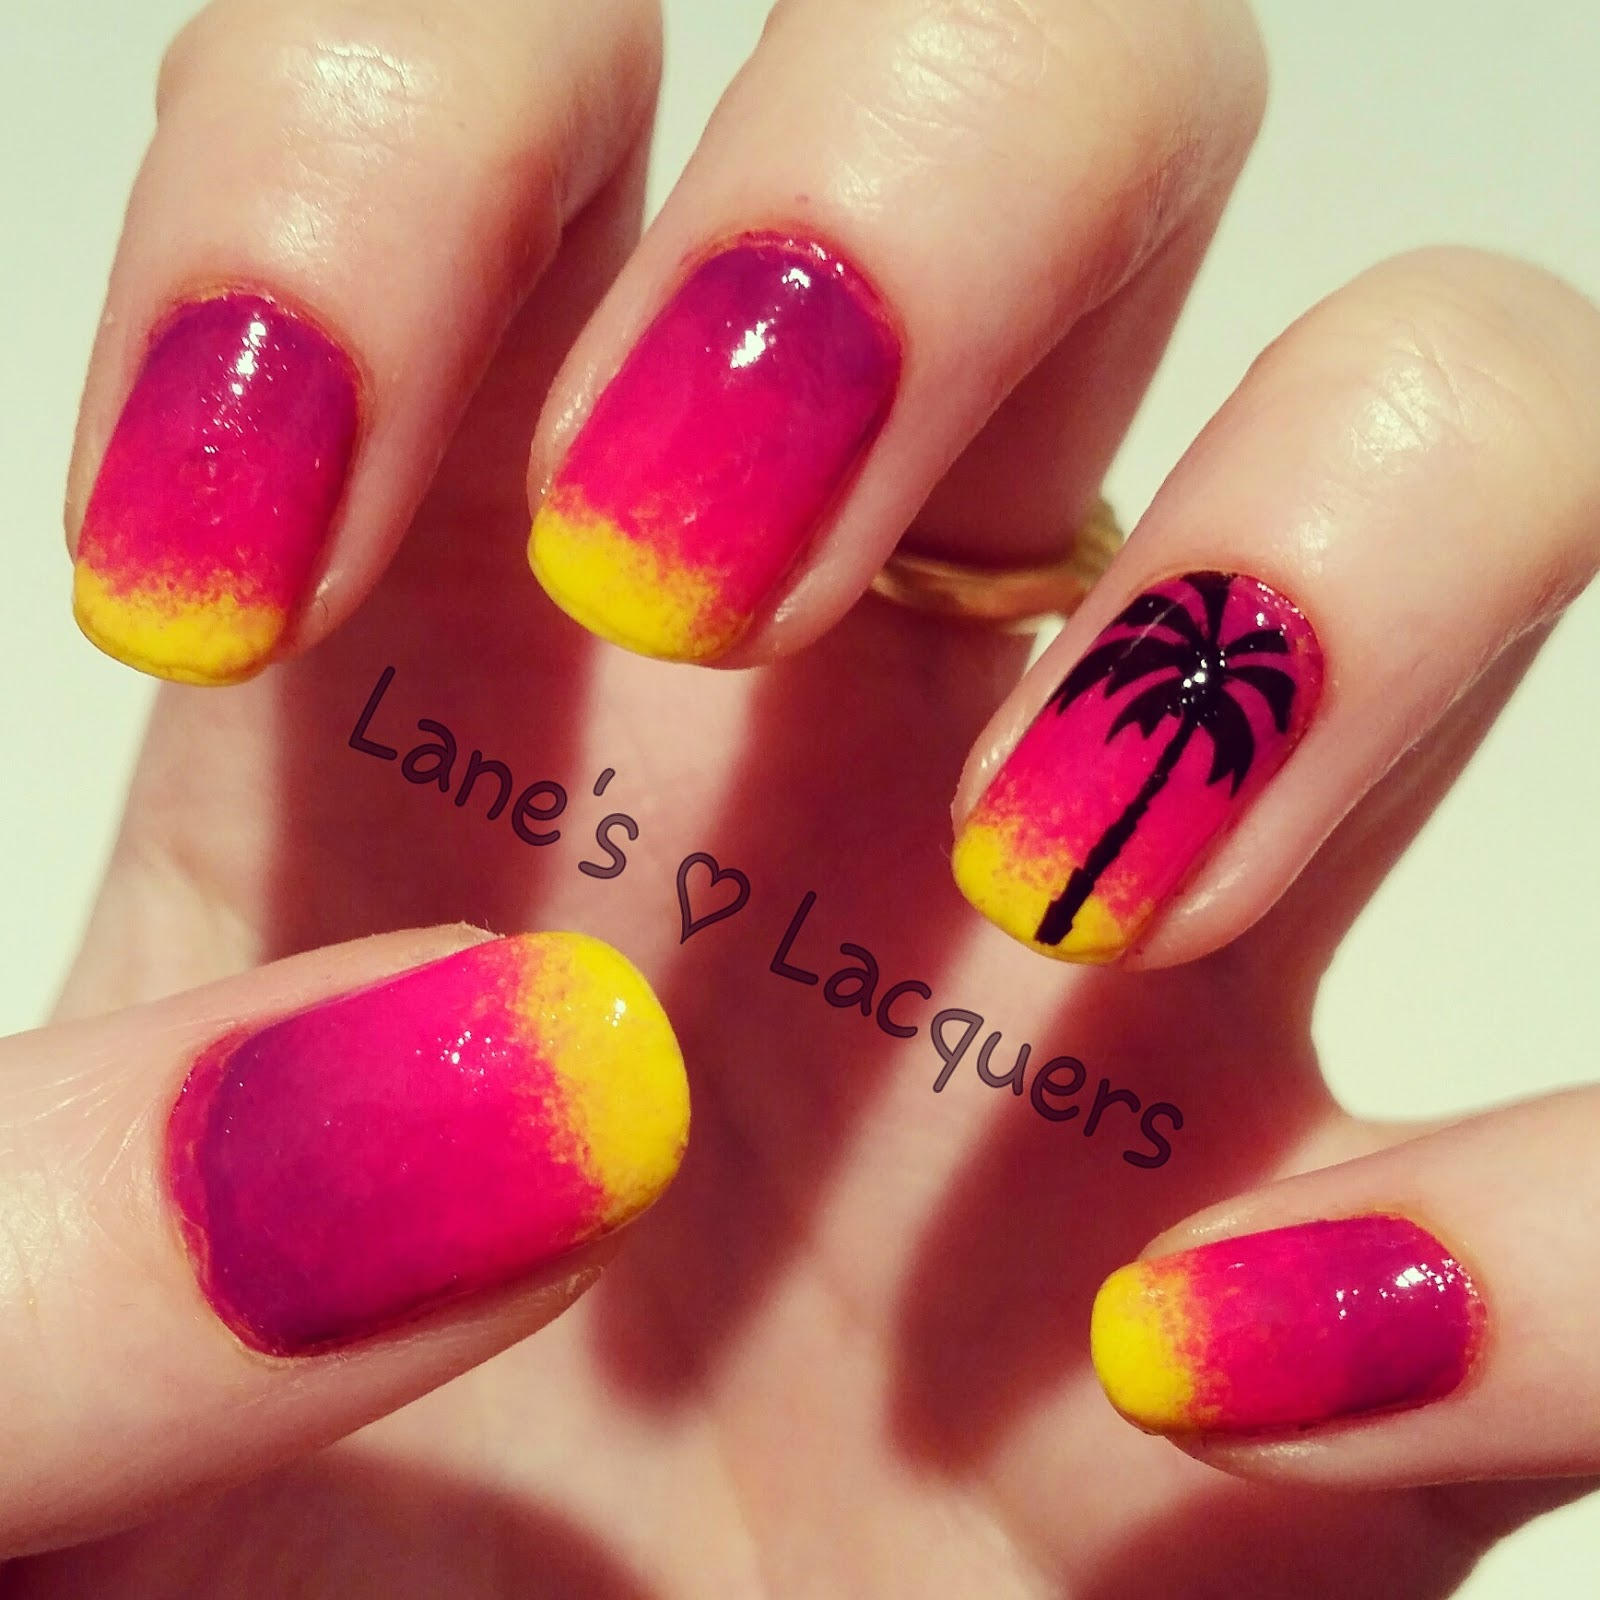 barry-m-beach-sunset-palm-tree-ombre-nail-art